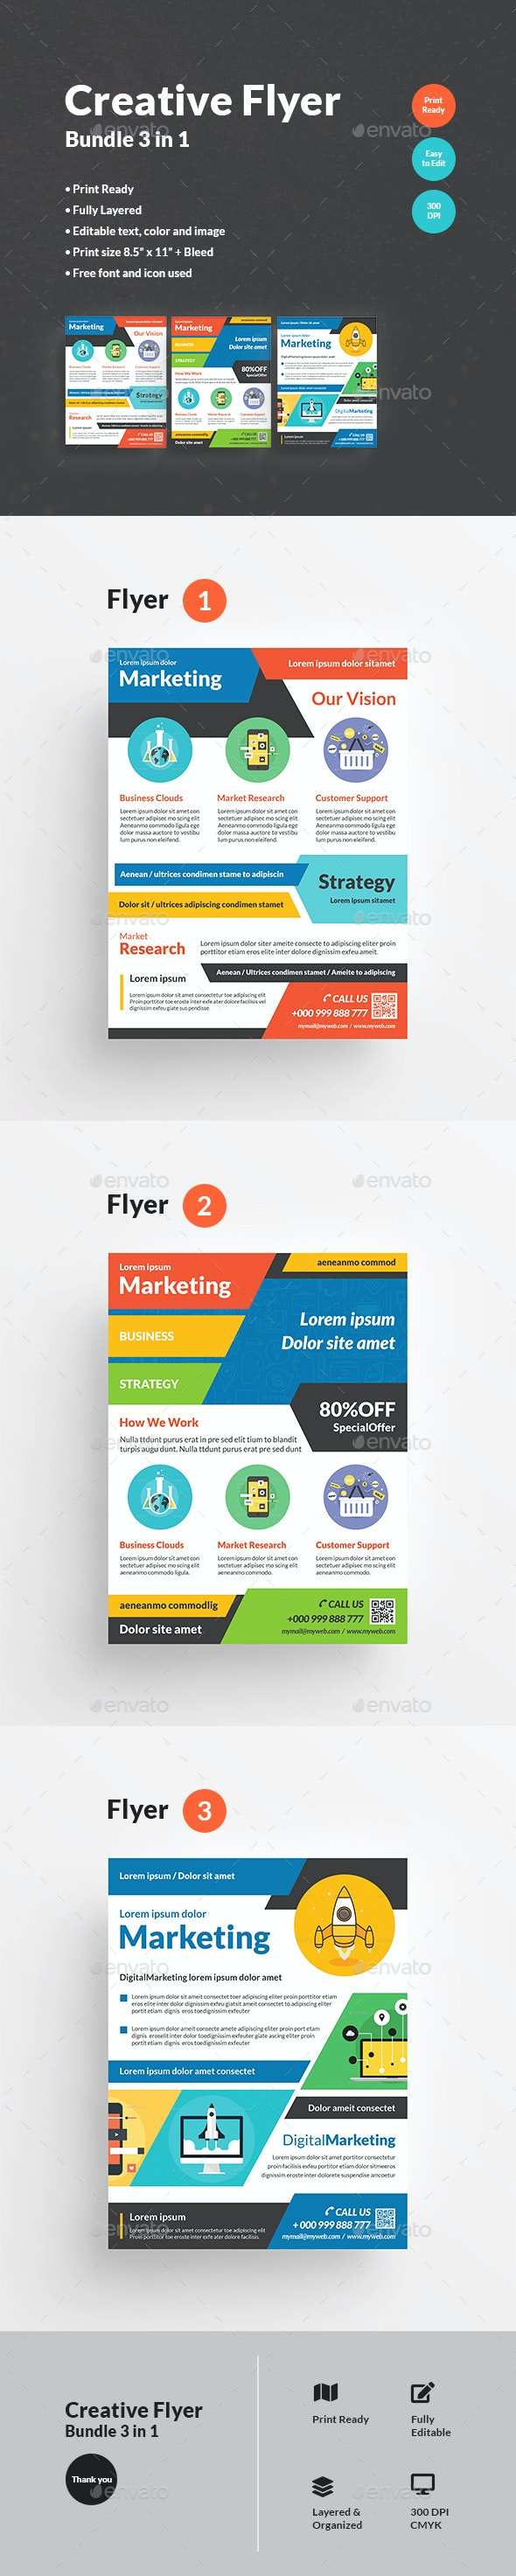 Creative Flyer Bundle 3 in 1 - Corporate Flyers